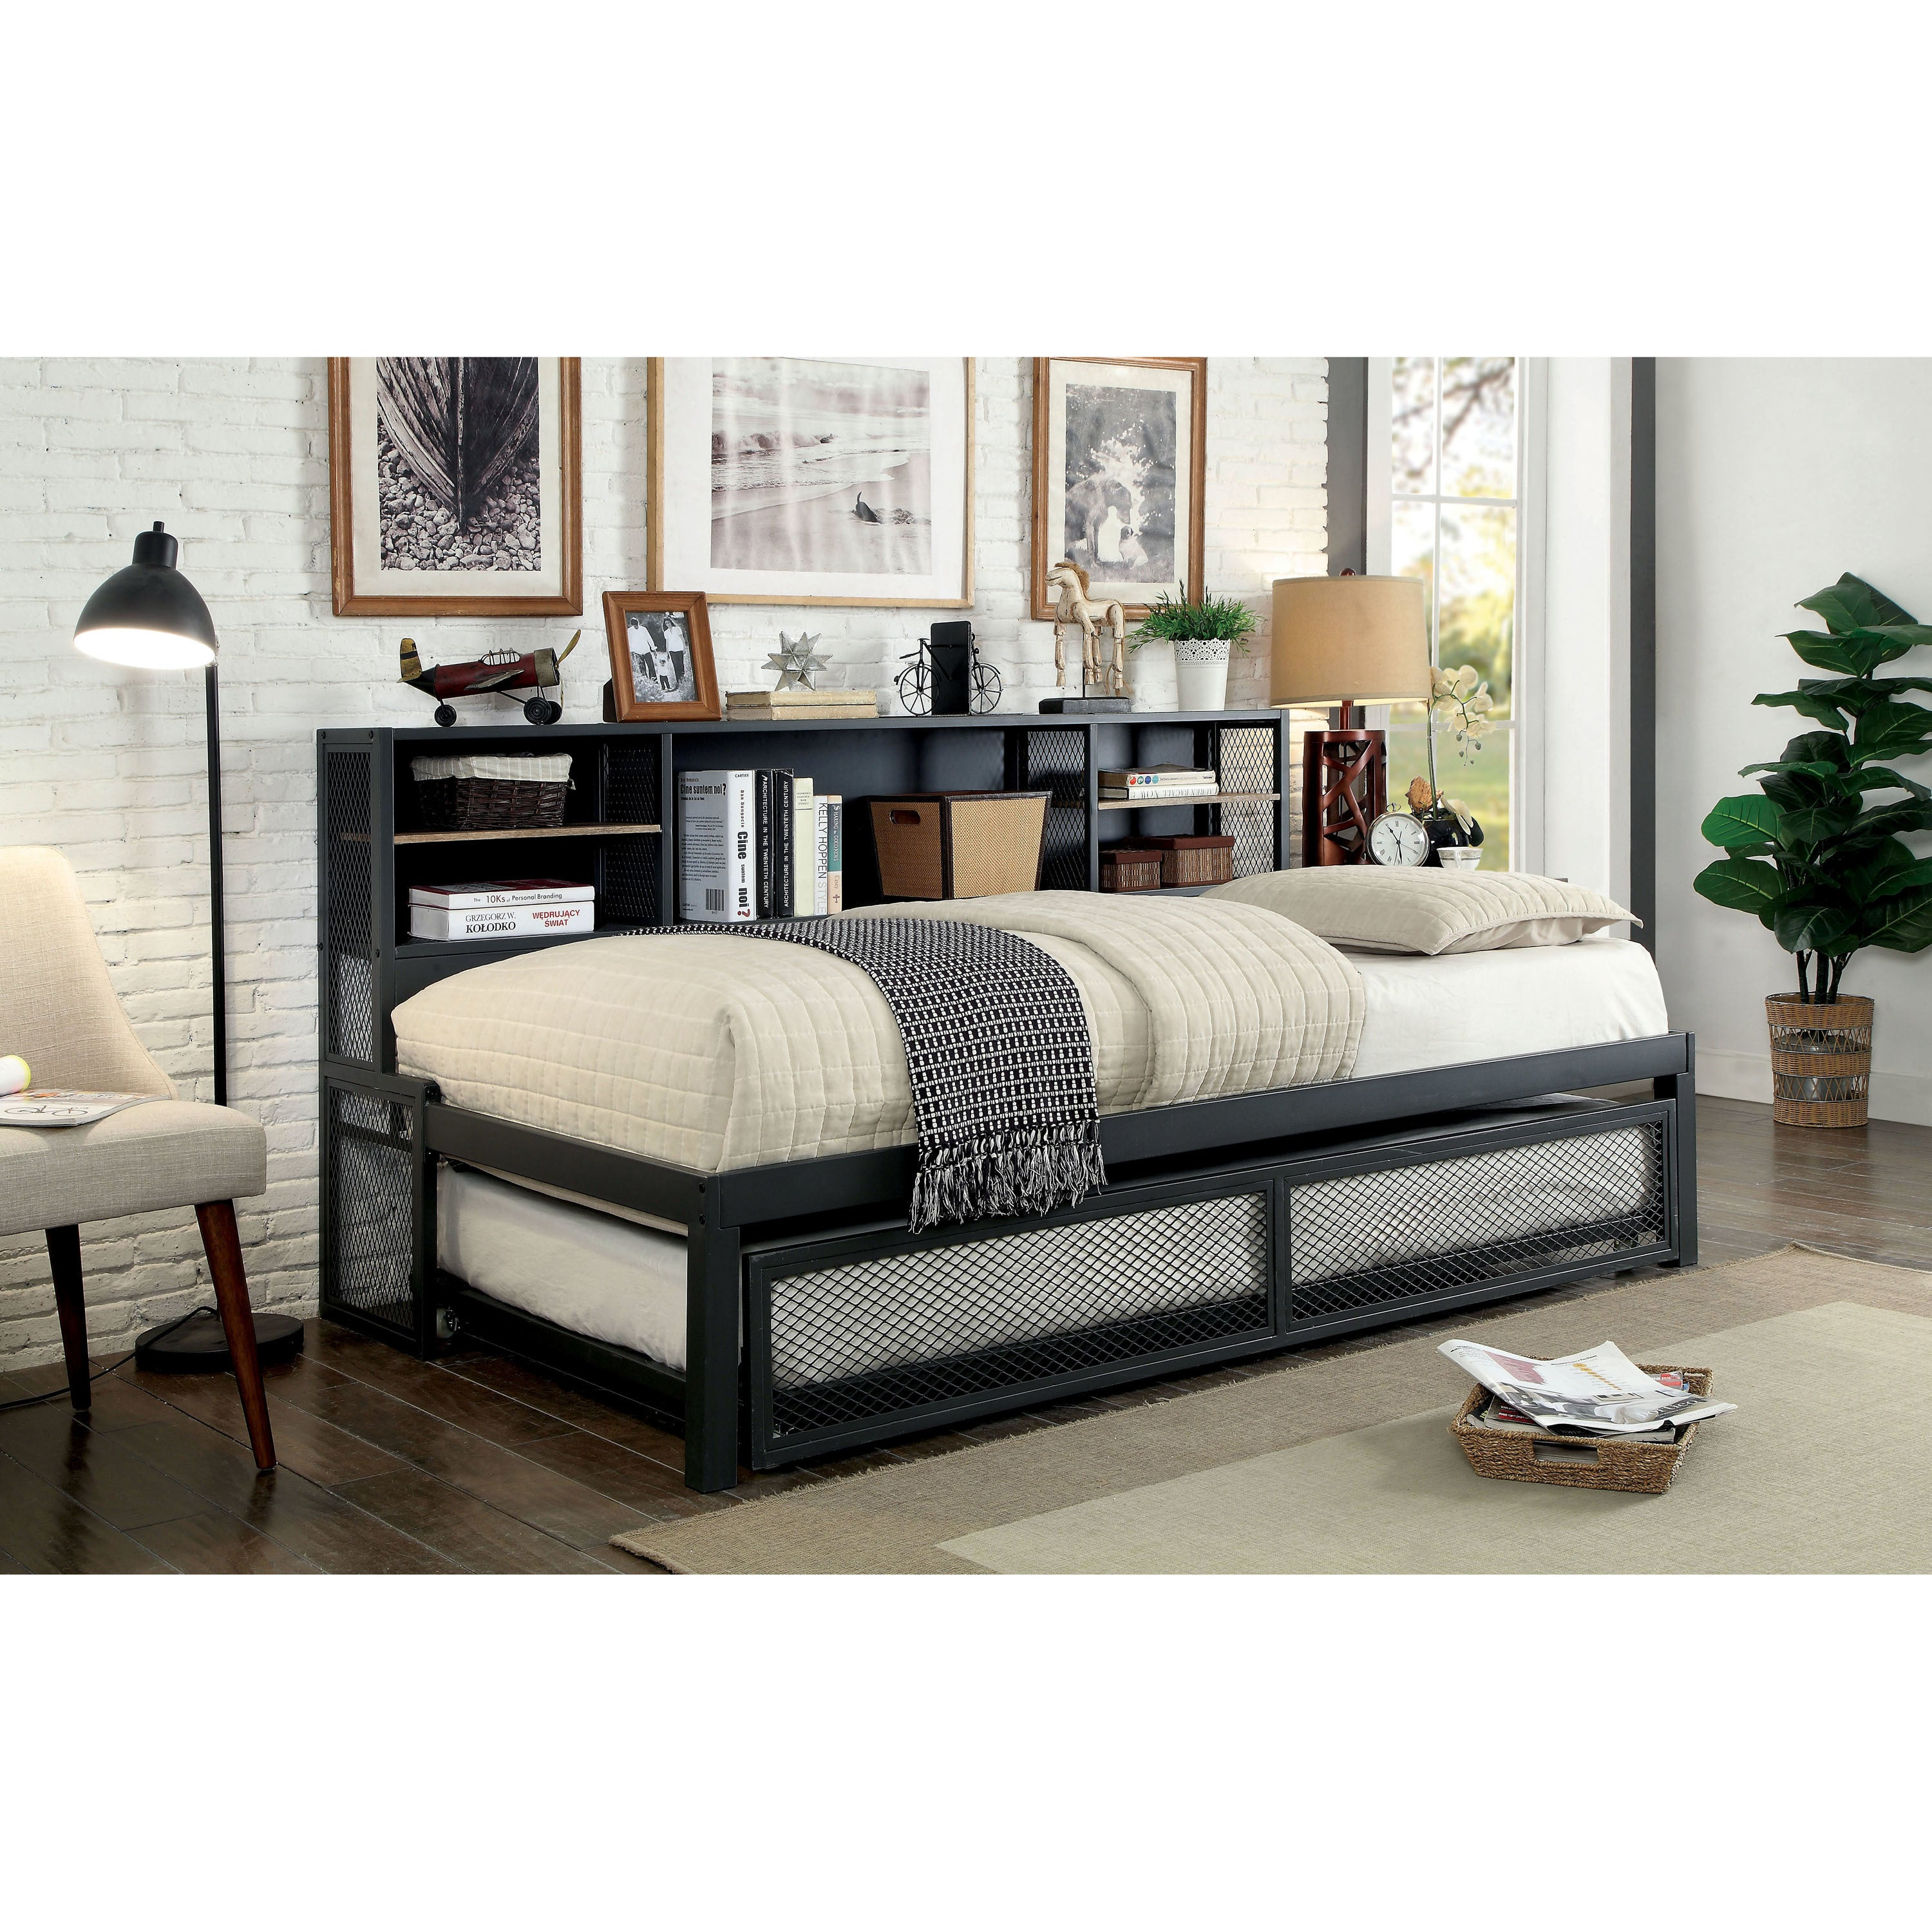 Shop Furniture Of America Ferno Industrial 2 Piece Gun Metal Twin Daybed Set With Trundle